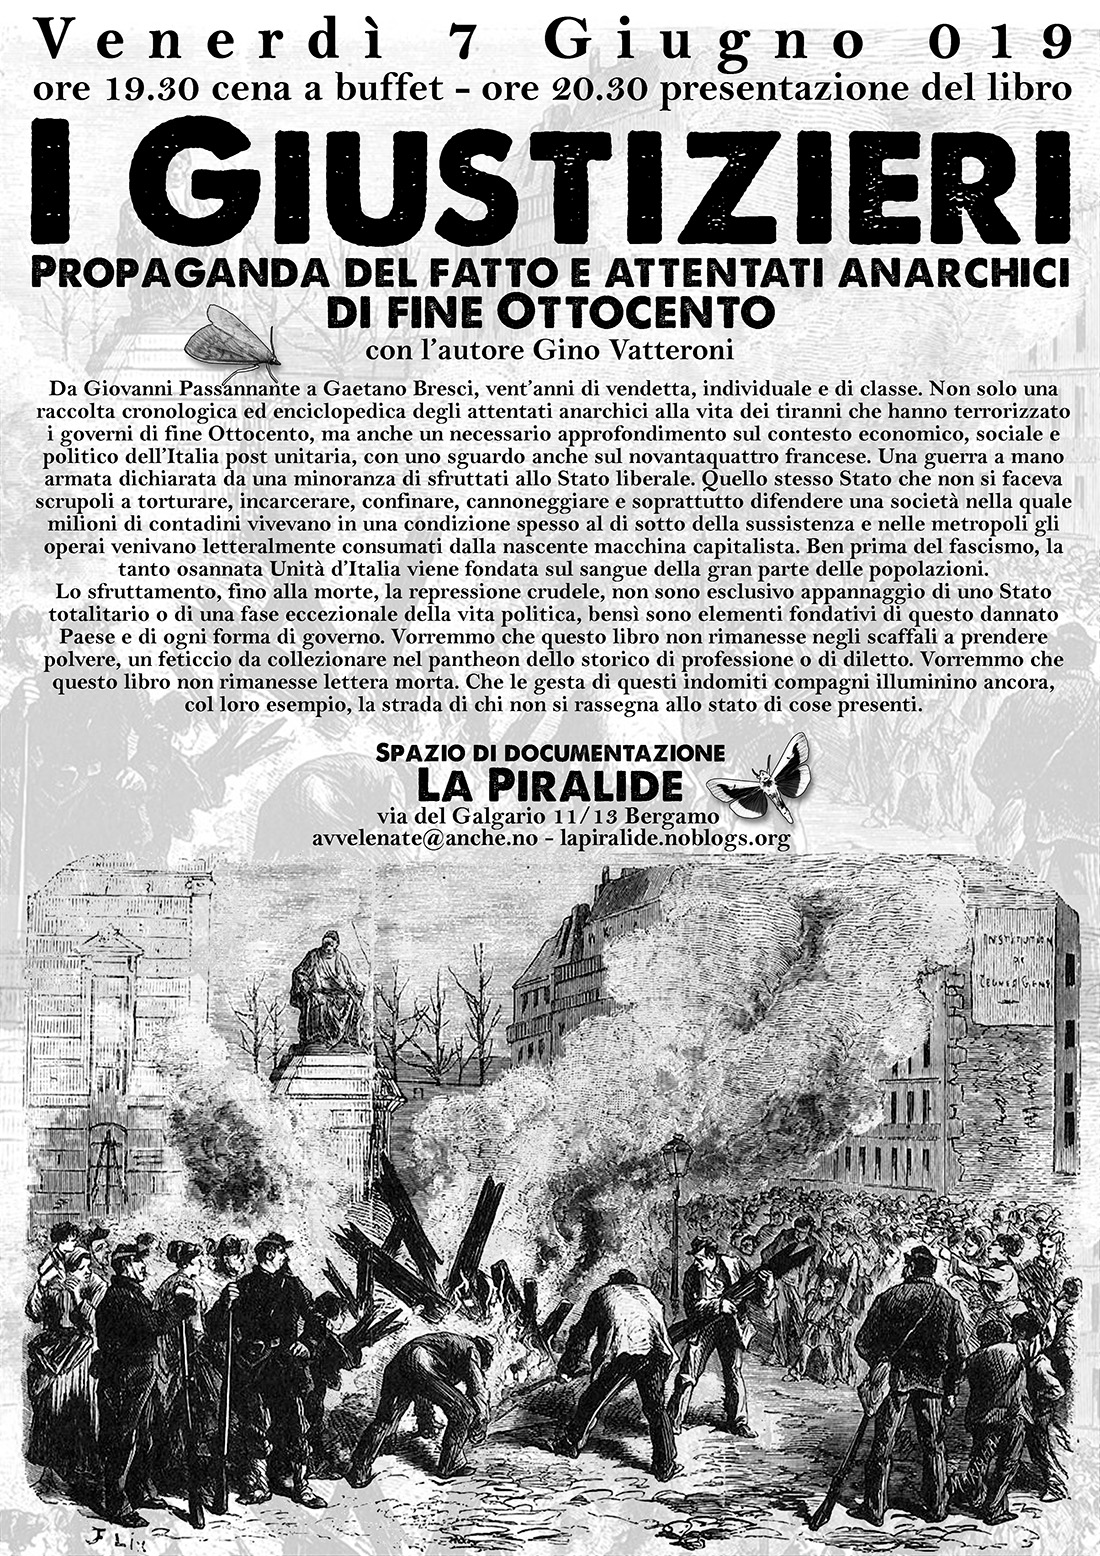 https://lapiralide.noblogs.org/files/2019/05/web-1.jpg